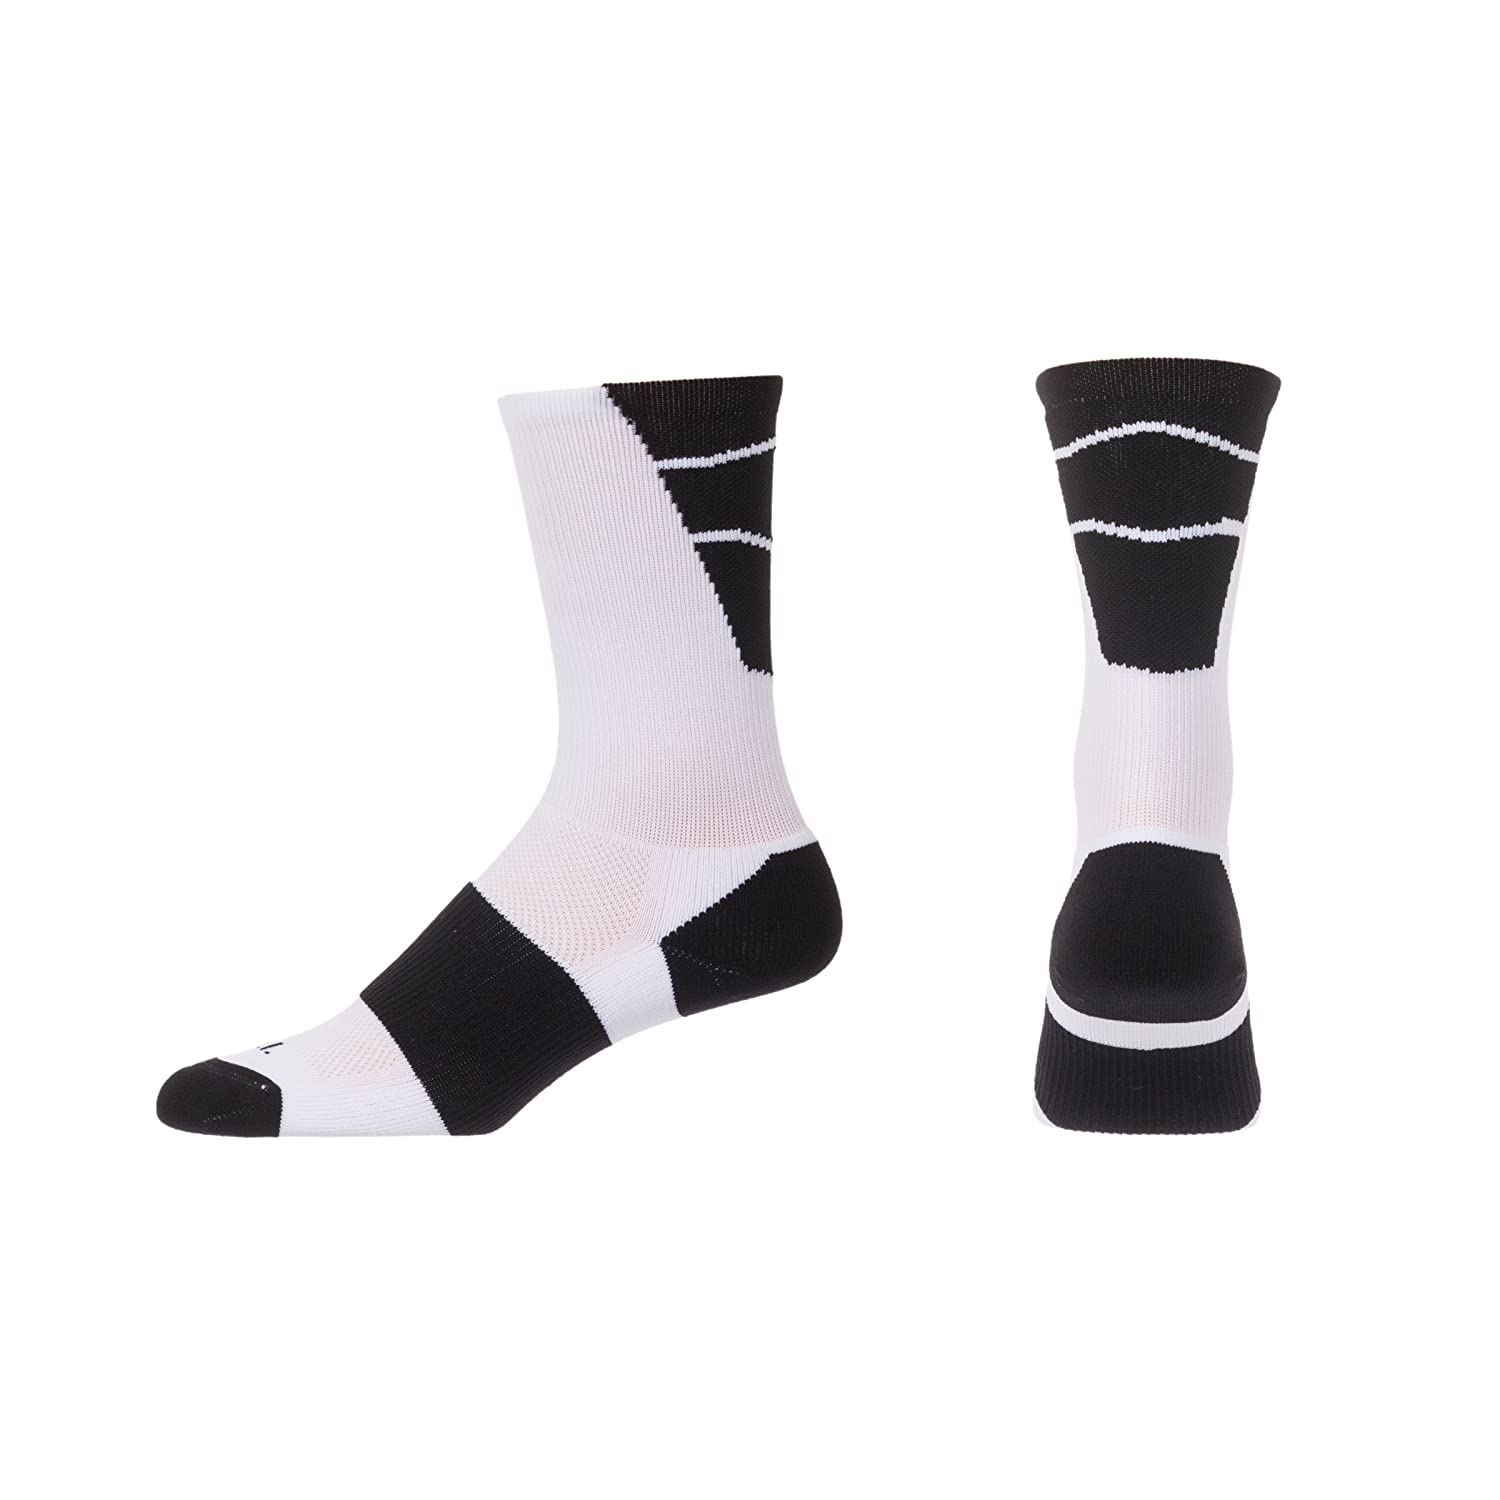 CSI Point Guard Performance Crew Socks Made In The USA White//Black